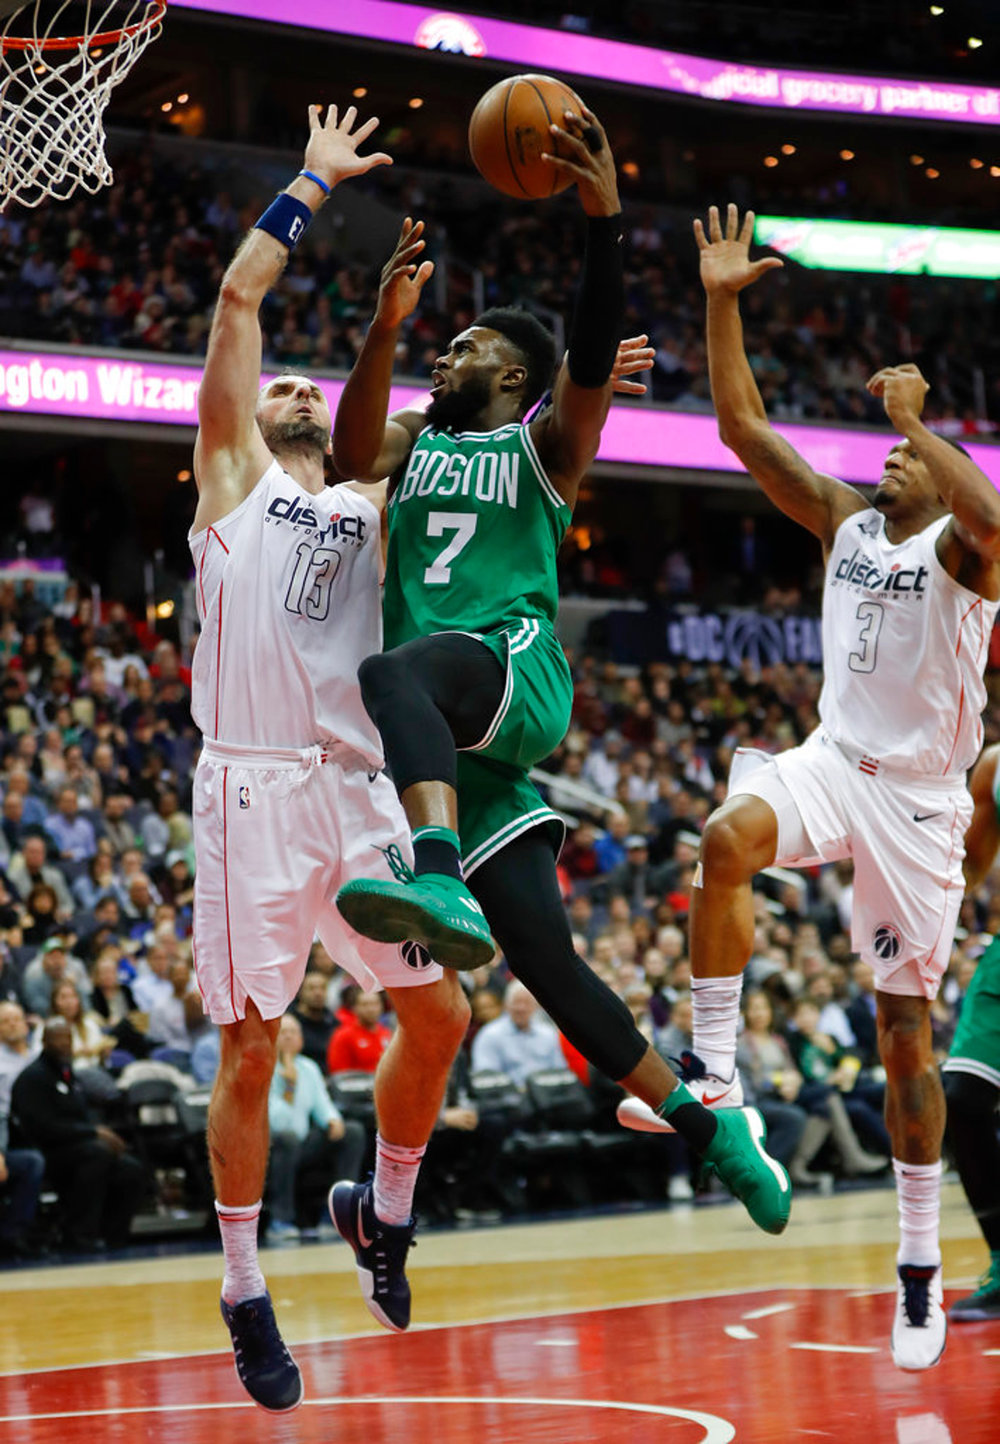 Boston Celtics guard Jaylen Brown (7) drives past Washington Wizards center Marcin Gortat (13), from Poland, and Bradley Beal (3) during the second half of an NBA basketball game Thursday, Feb. 8, 2018, in Washington. (AP Photo/Pablo Martinez Monsivais)